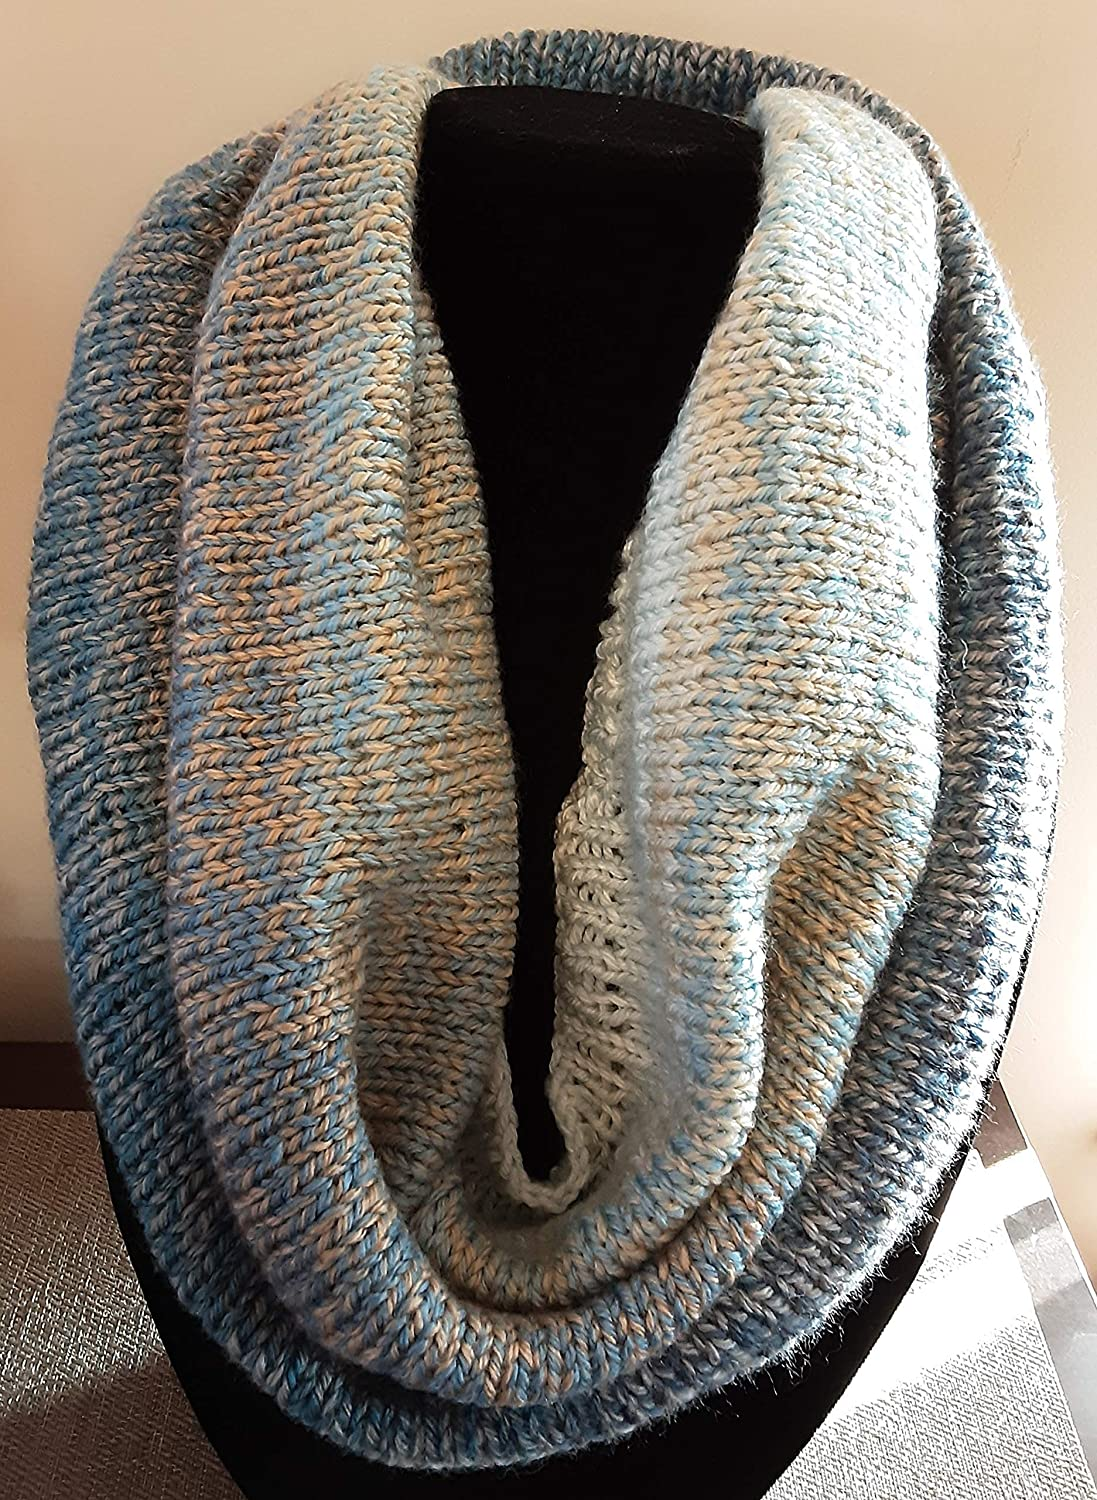 Handmade Popular Max 83% OFF standard Firefly Ombre Tweed Stripe Cowl Scarf Blue Gre Infinity